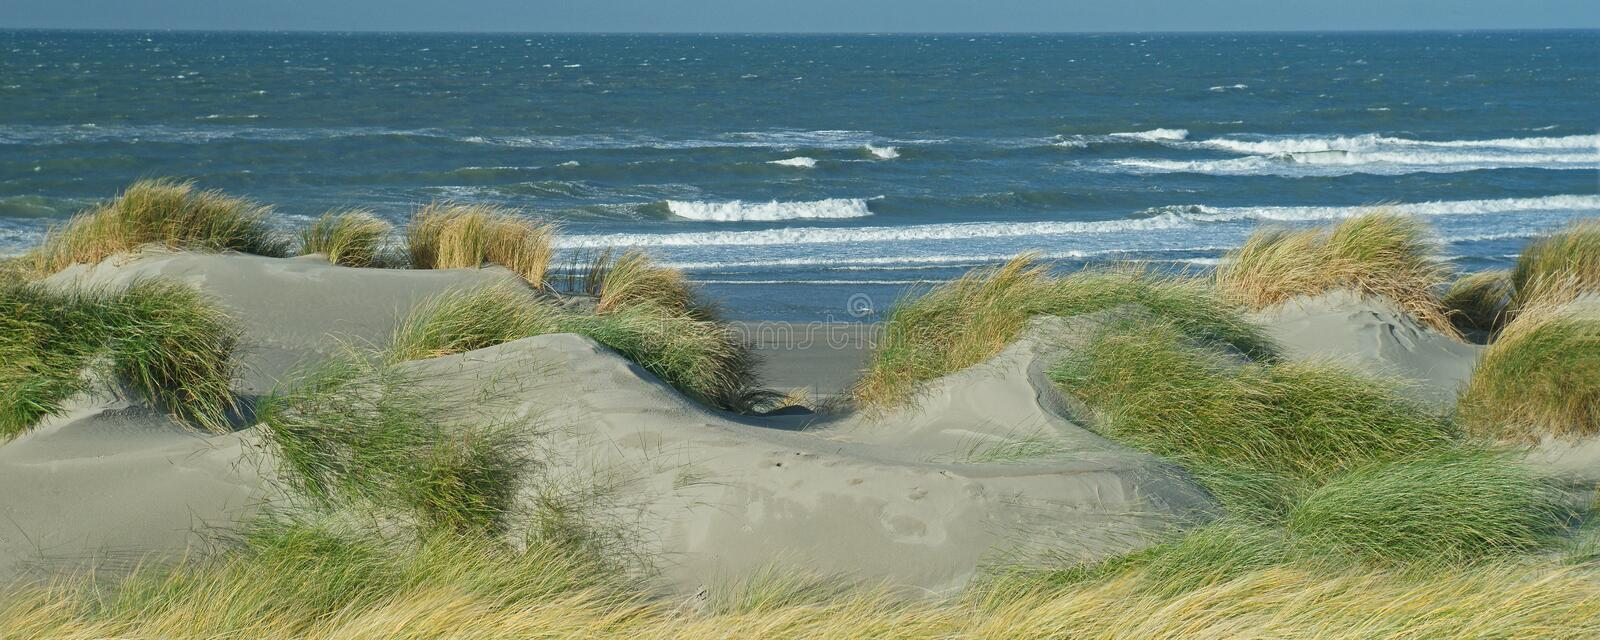 Panoramic view with dunes, beach and North Sea waves royalty free stock photos